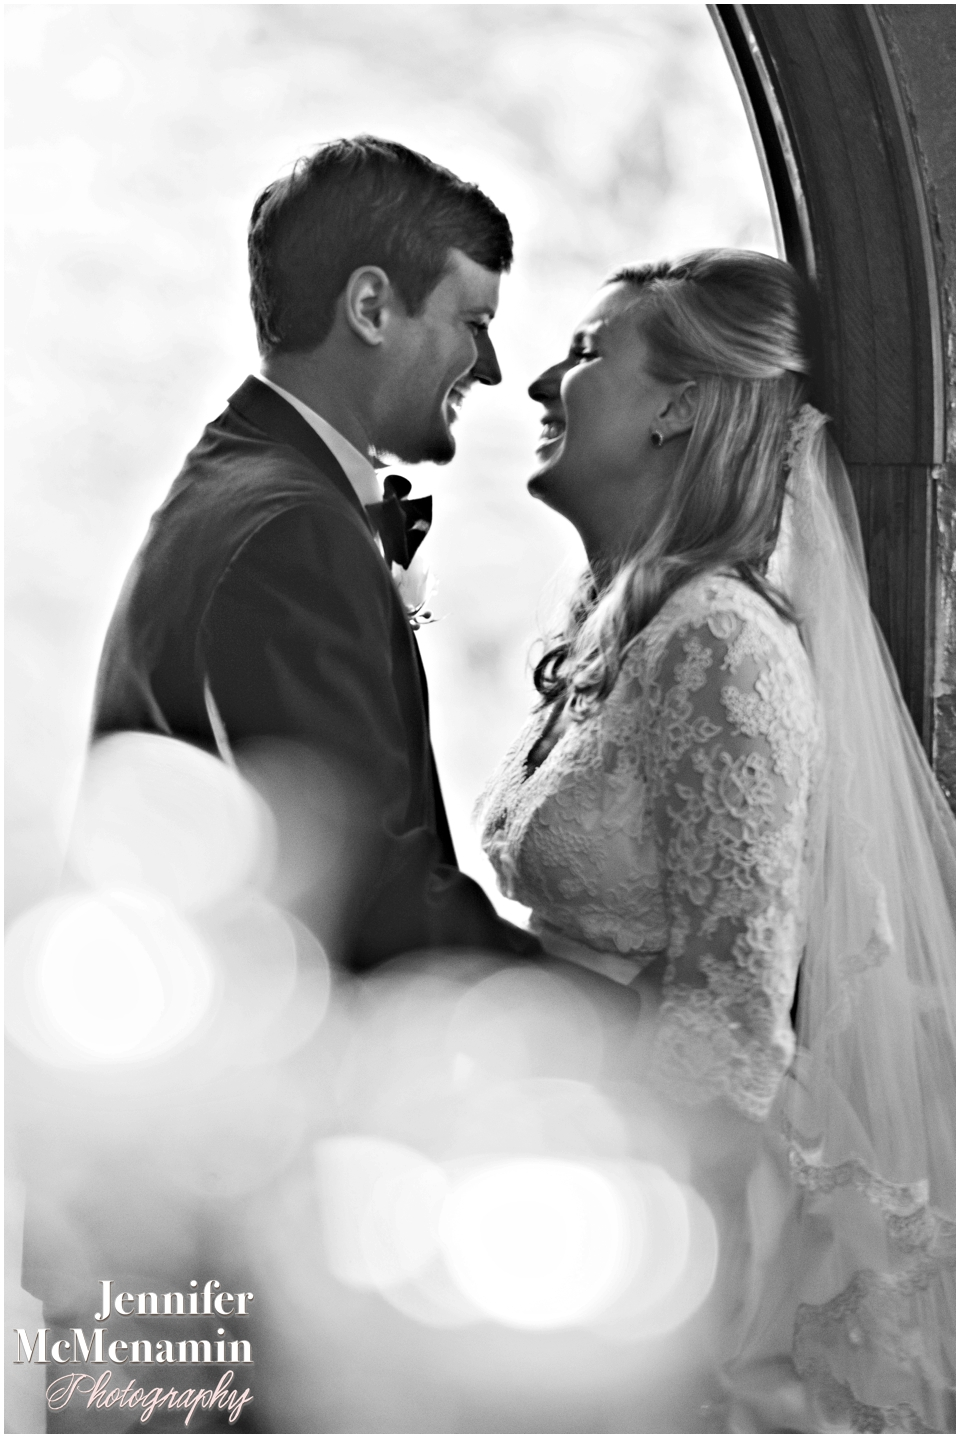 0072_RyanClemmens_02026bw-0557_JenniferMcMenaminPhotography_Immaculate-Conception-Church_The-Cloisters_Baltimore-wedding-photography_Baltimore-wedding-photographer